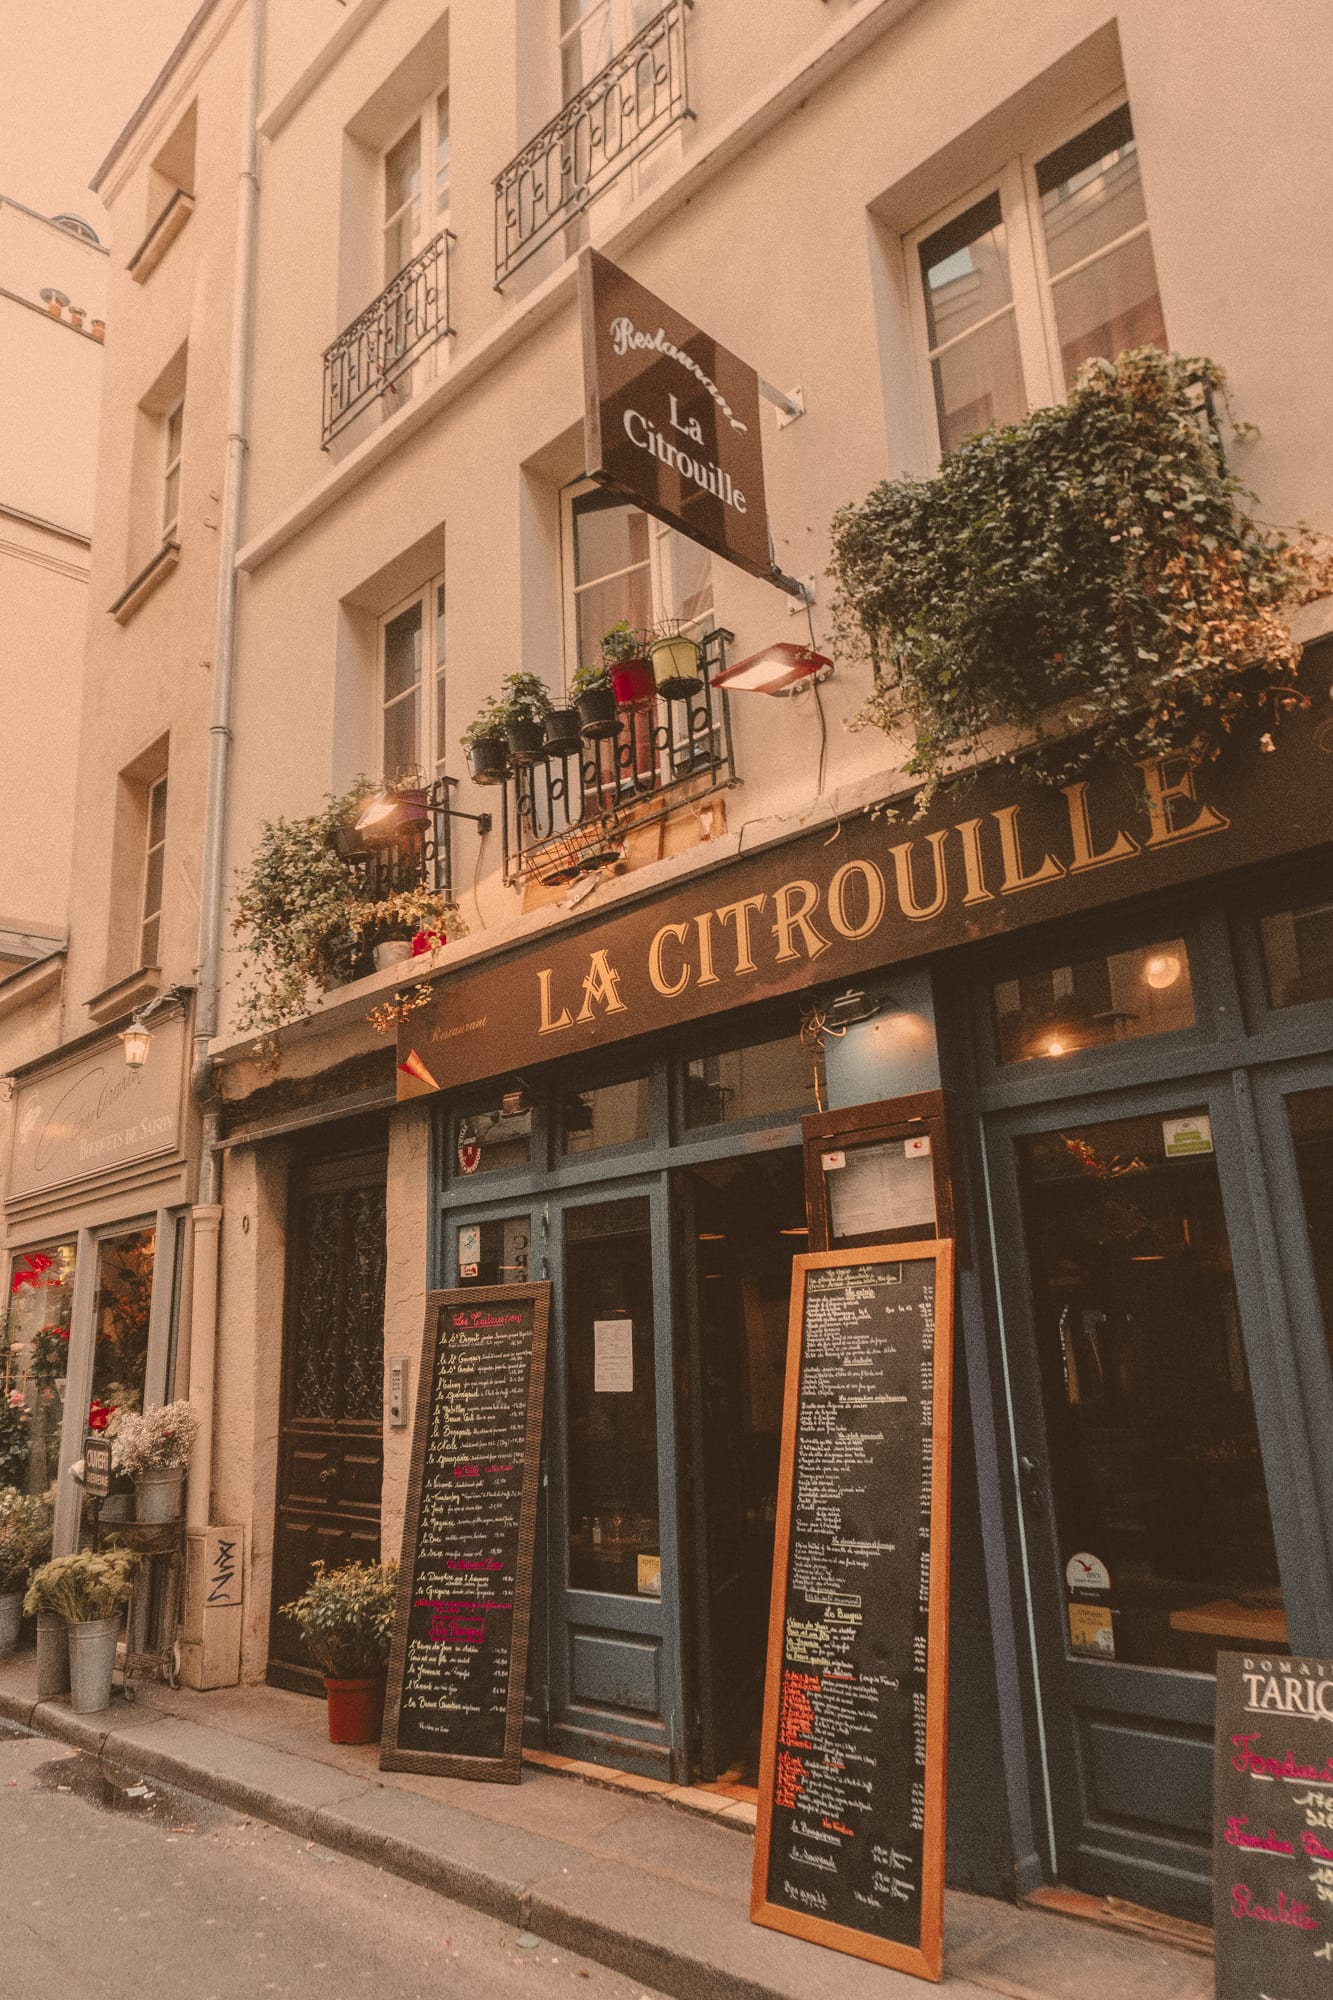 la citrouille cafe in Paris